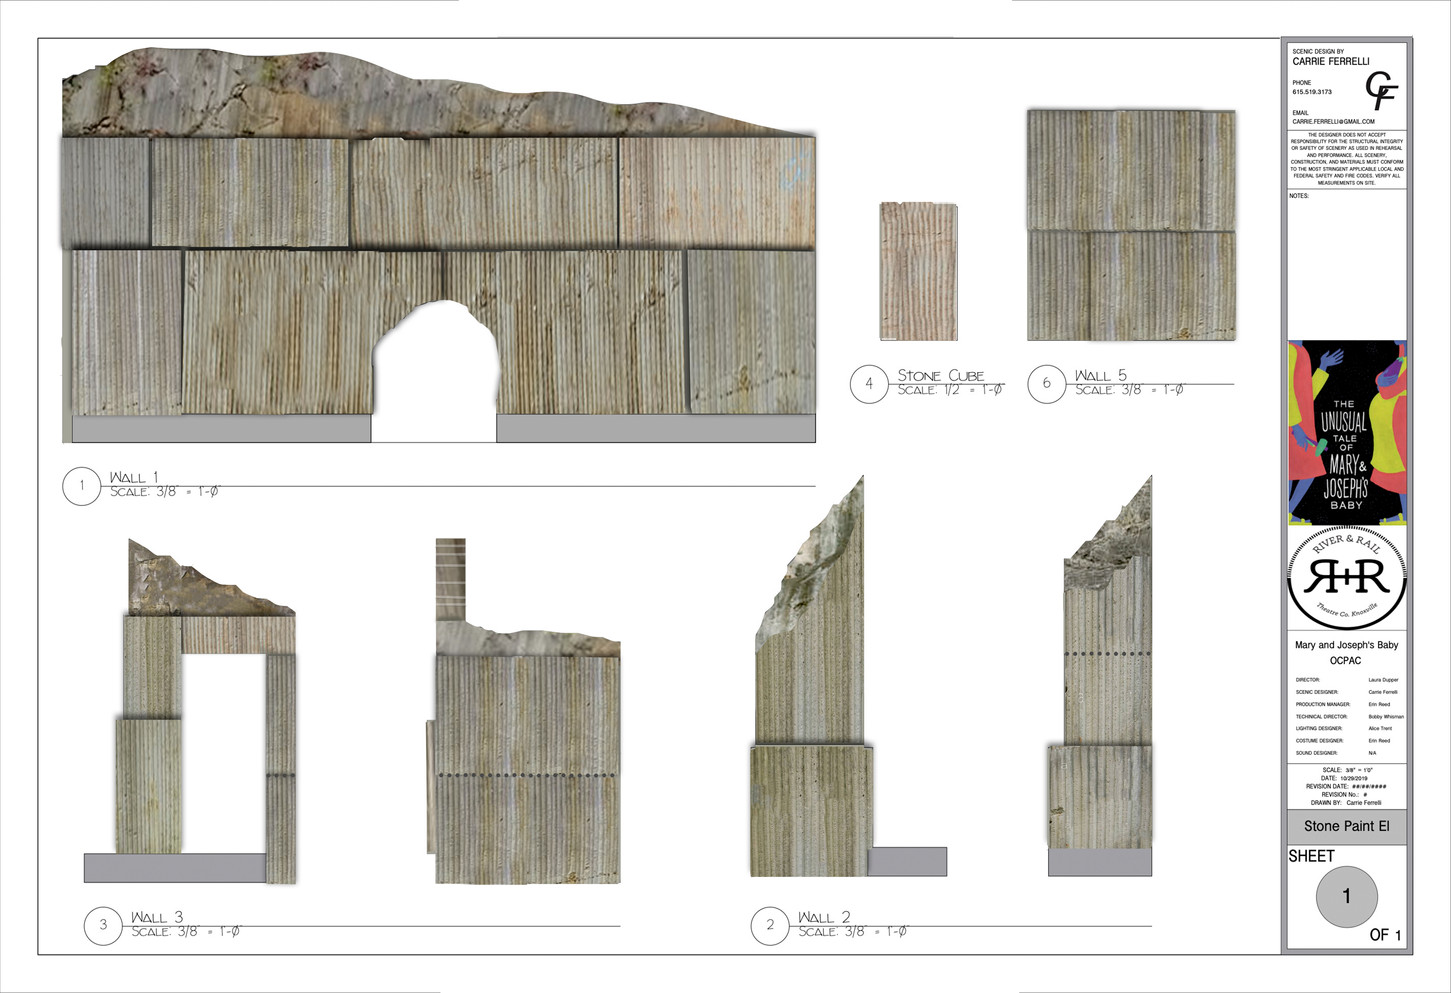 Paint Elevation of Stone Walls